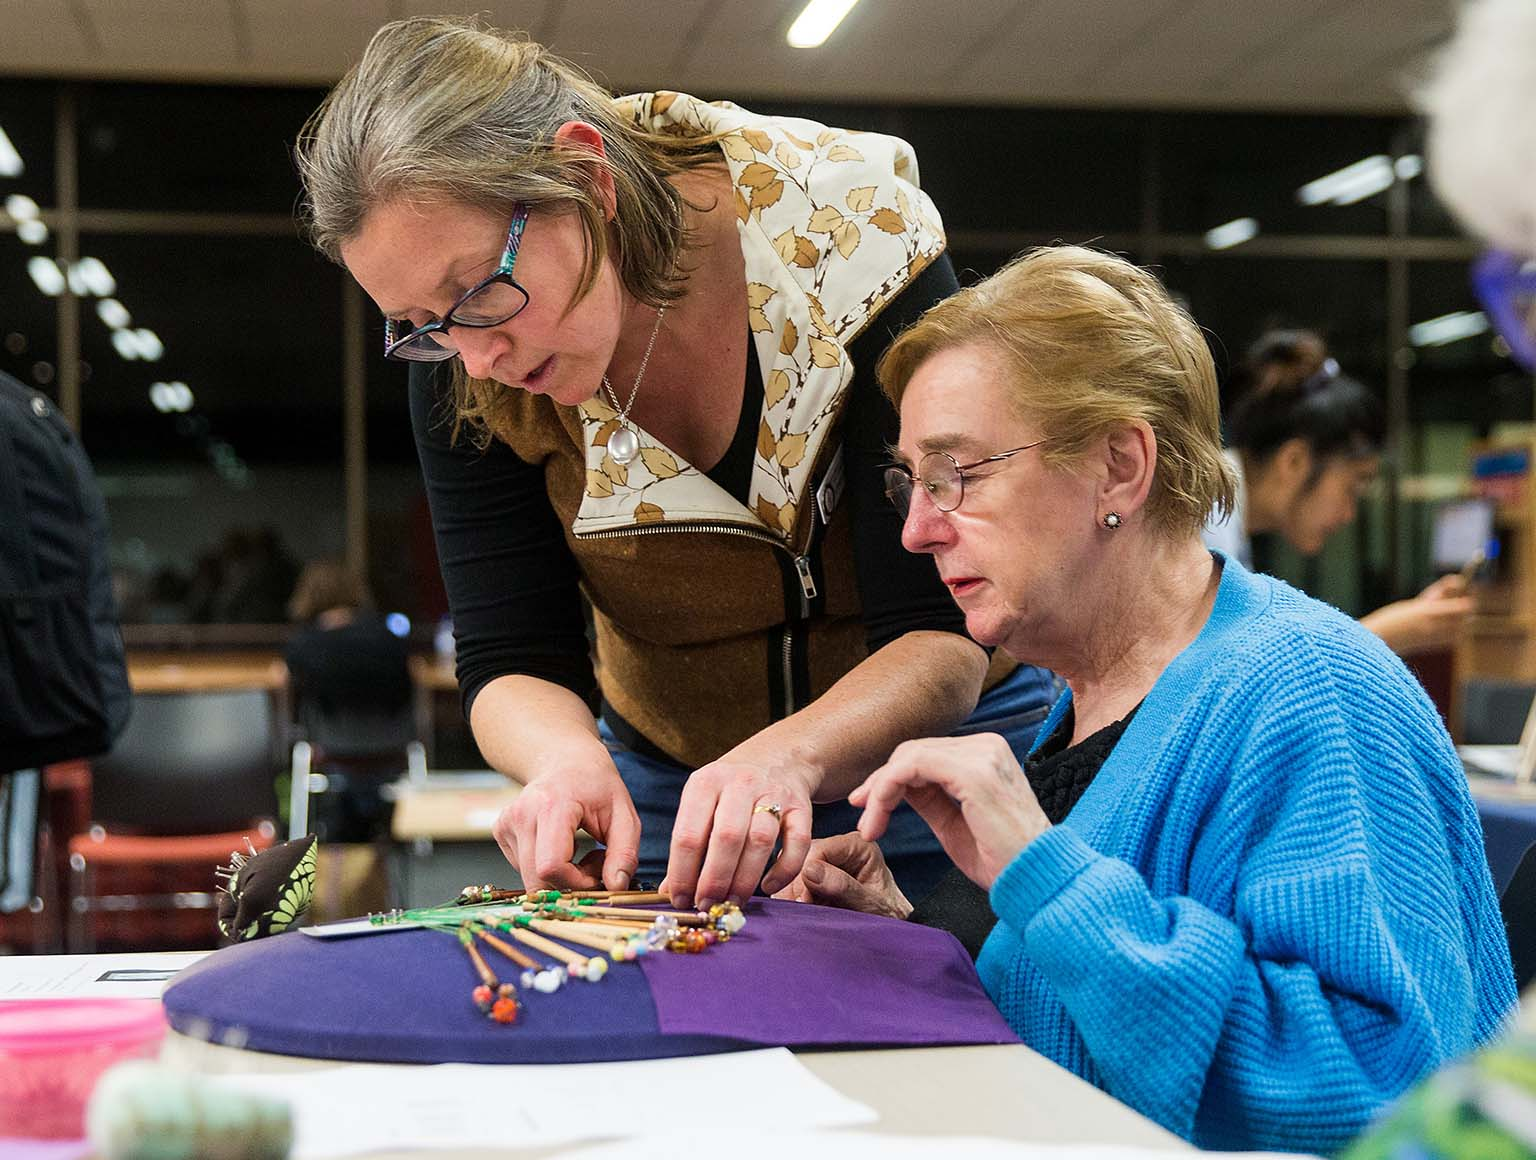 Photo of a middle-aged woman standing beside a seated older woman, showing her how to thread lace using bobbins on the table in front of her, other women in the background, nightime outside the window.